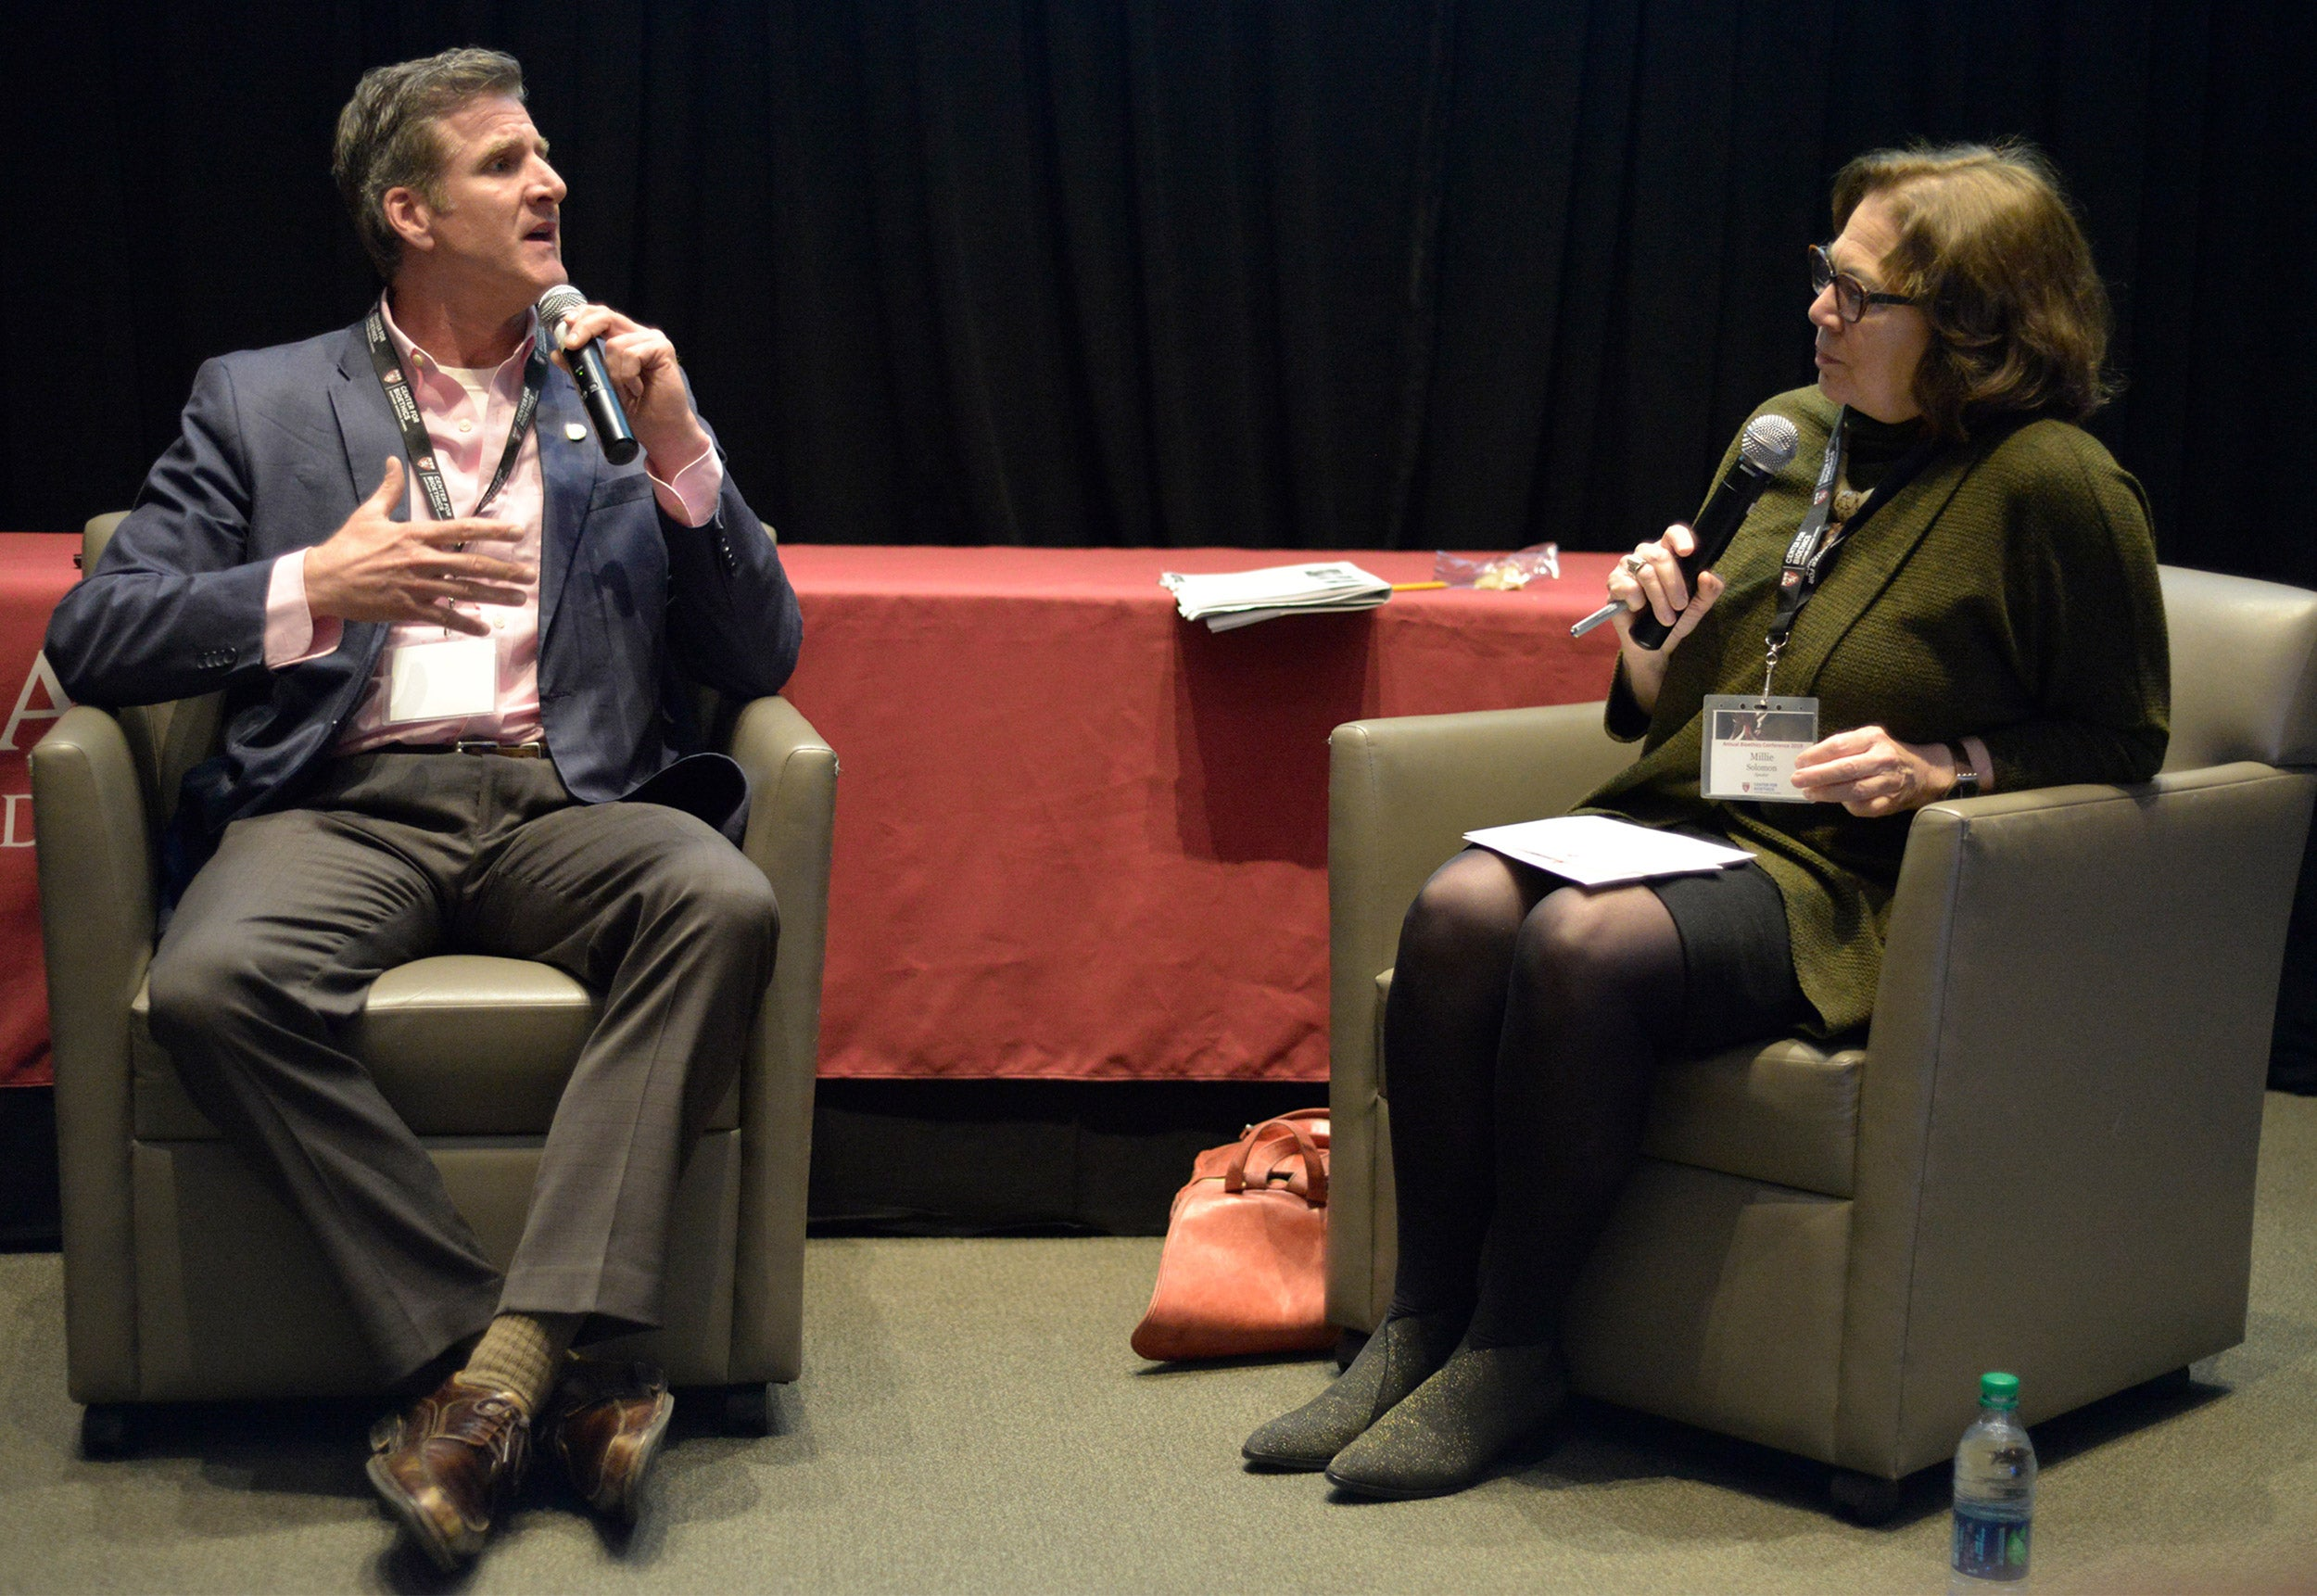 Harvard bioethics conference focuses on physician-assisted death